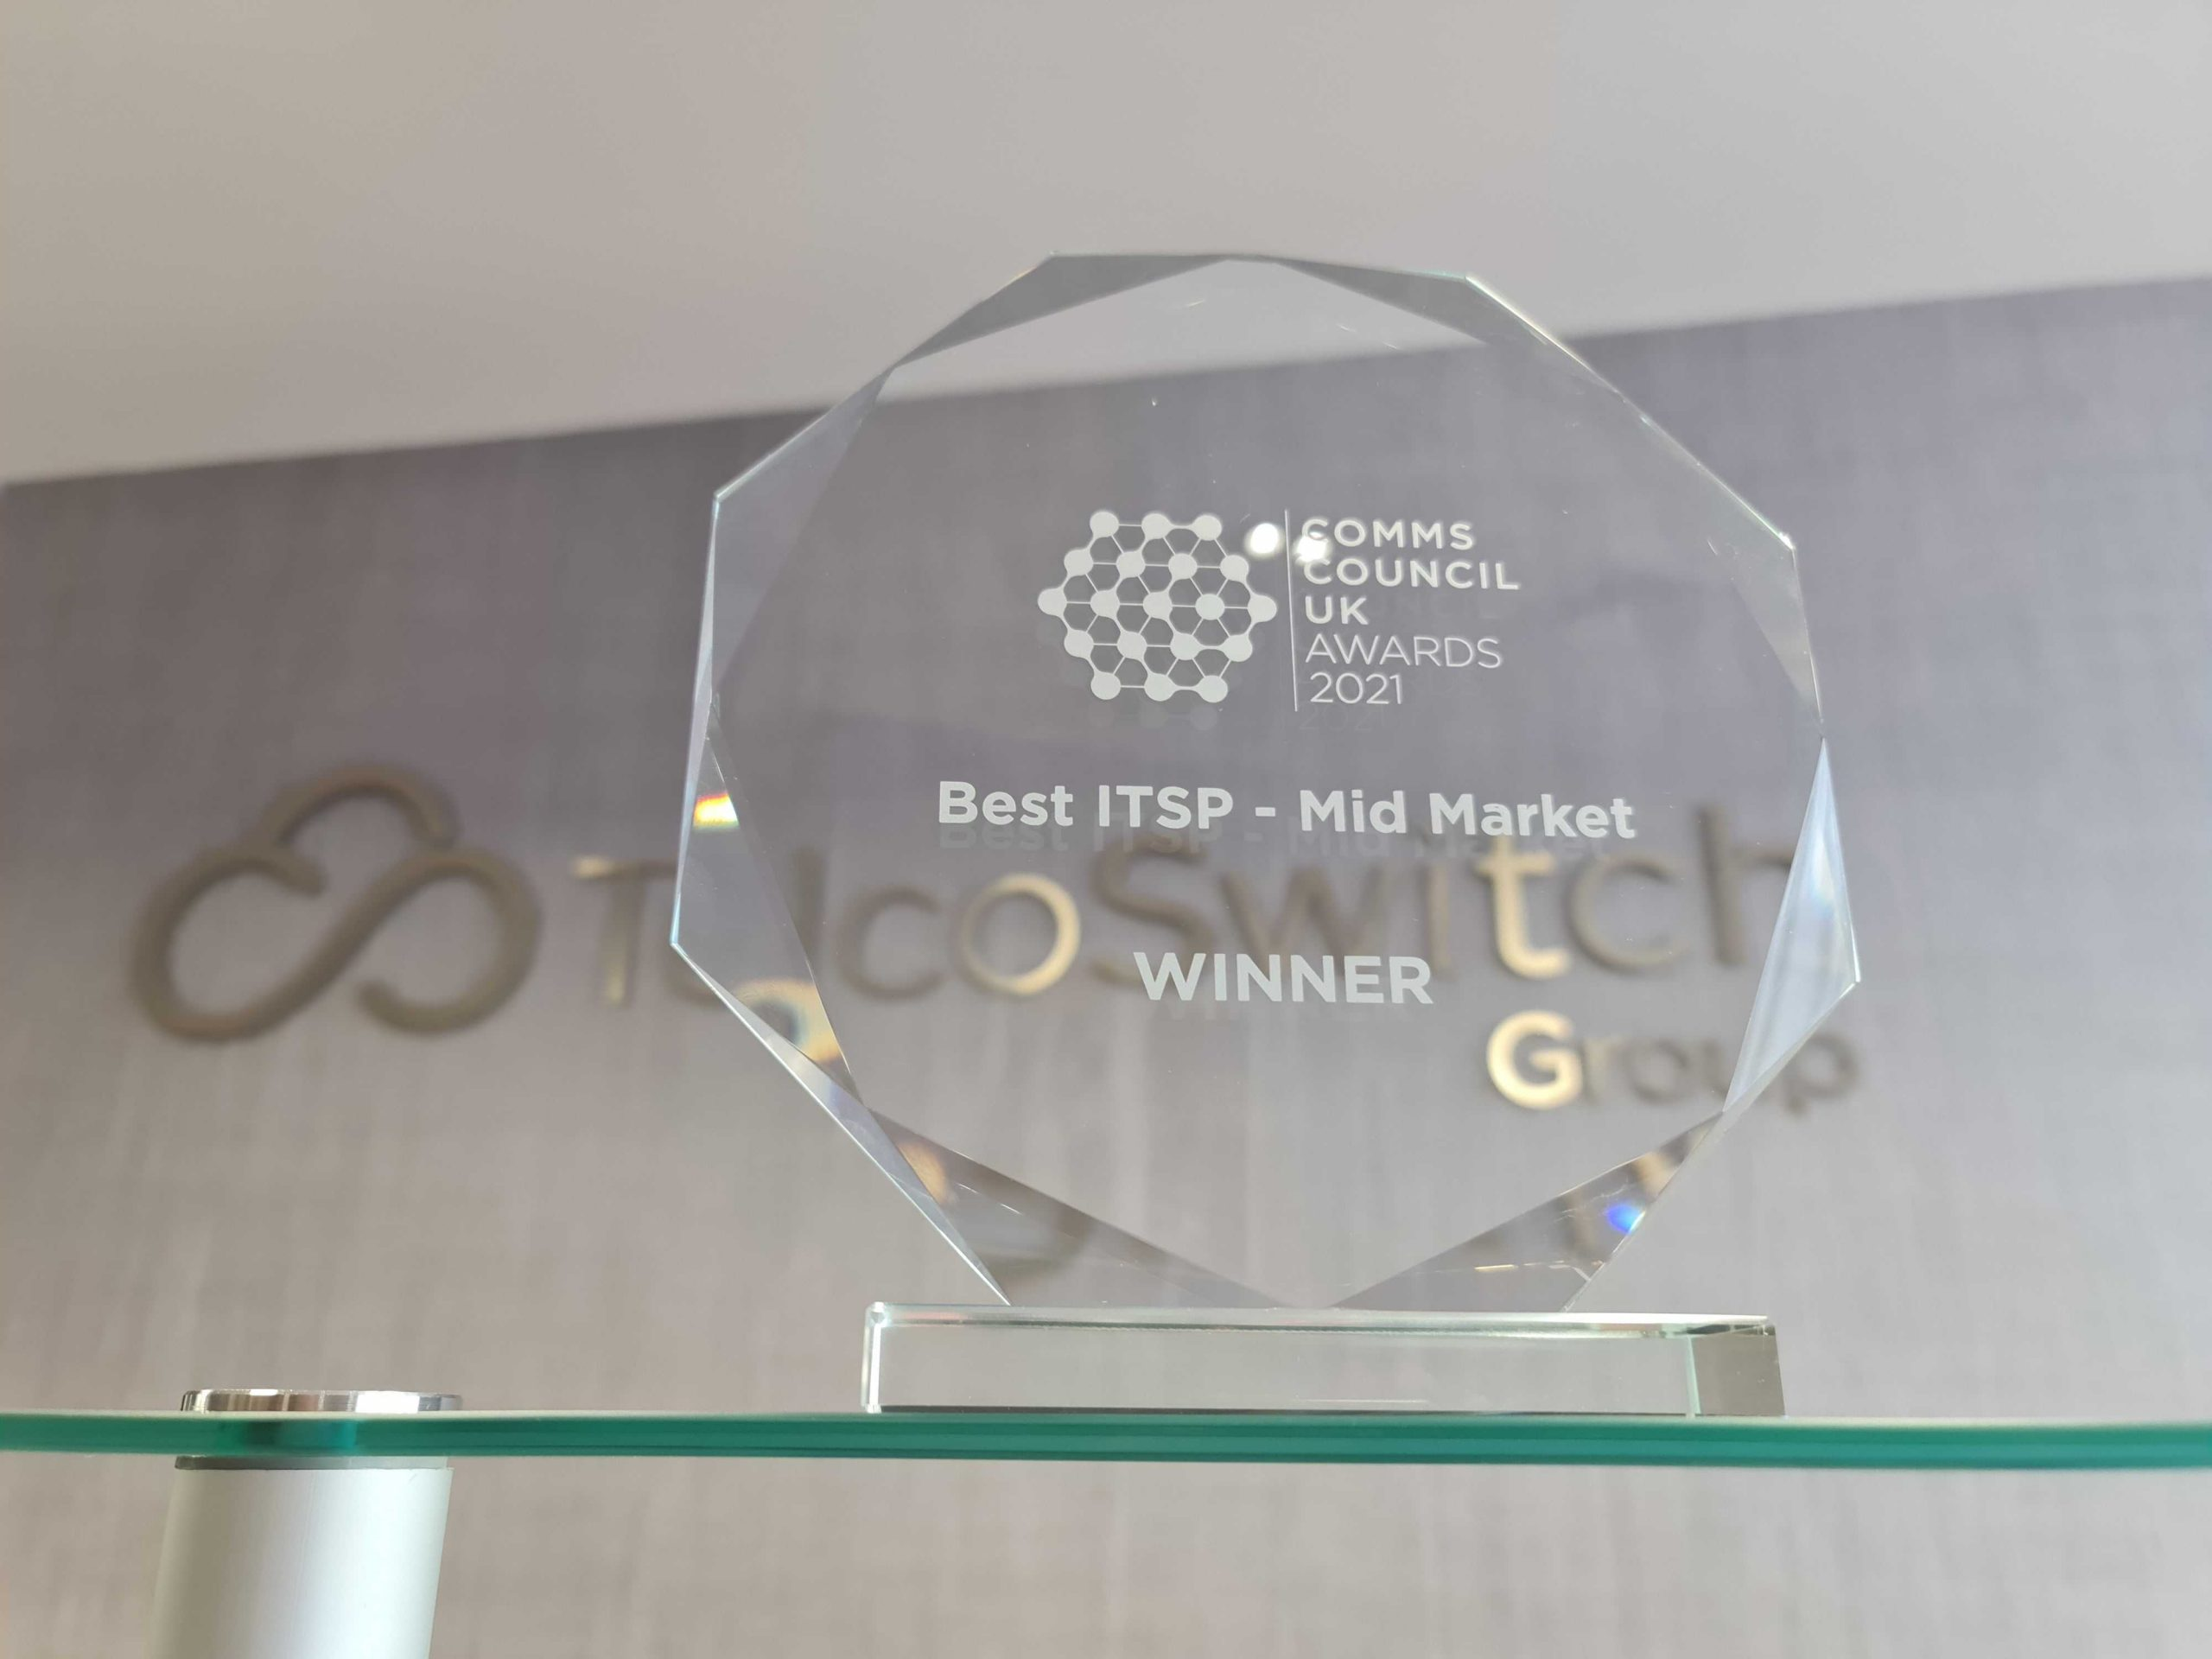 TelcoSwitch wins at the Comms Council UK Awards 2021